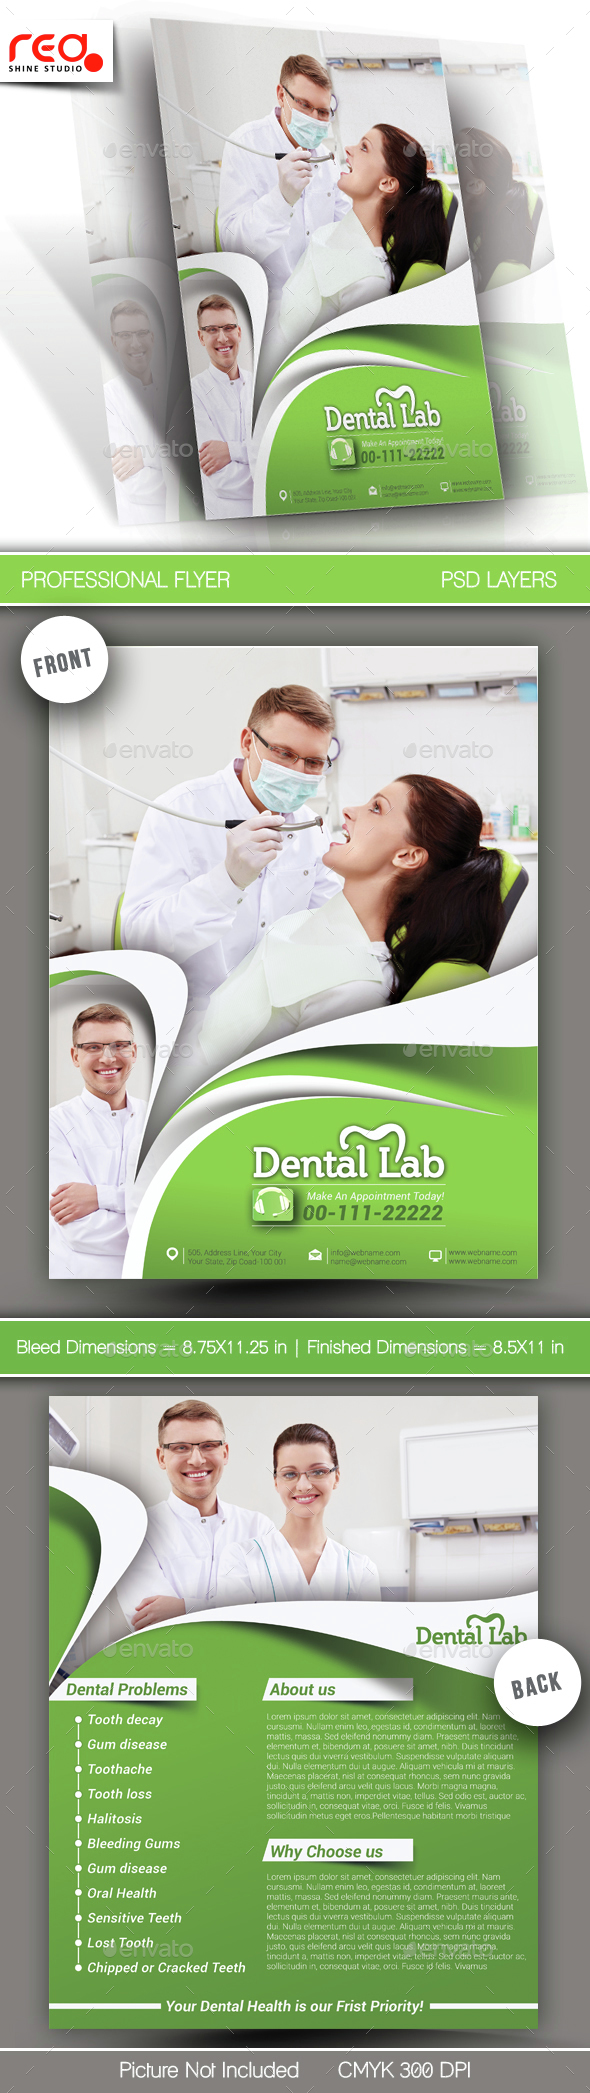 Dental Lab Flyer & Poster Template  - Corporate Flyers